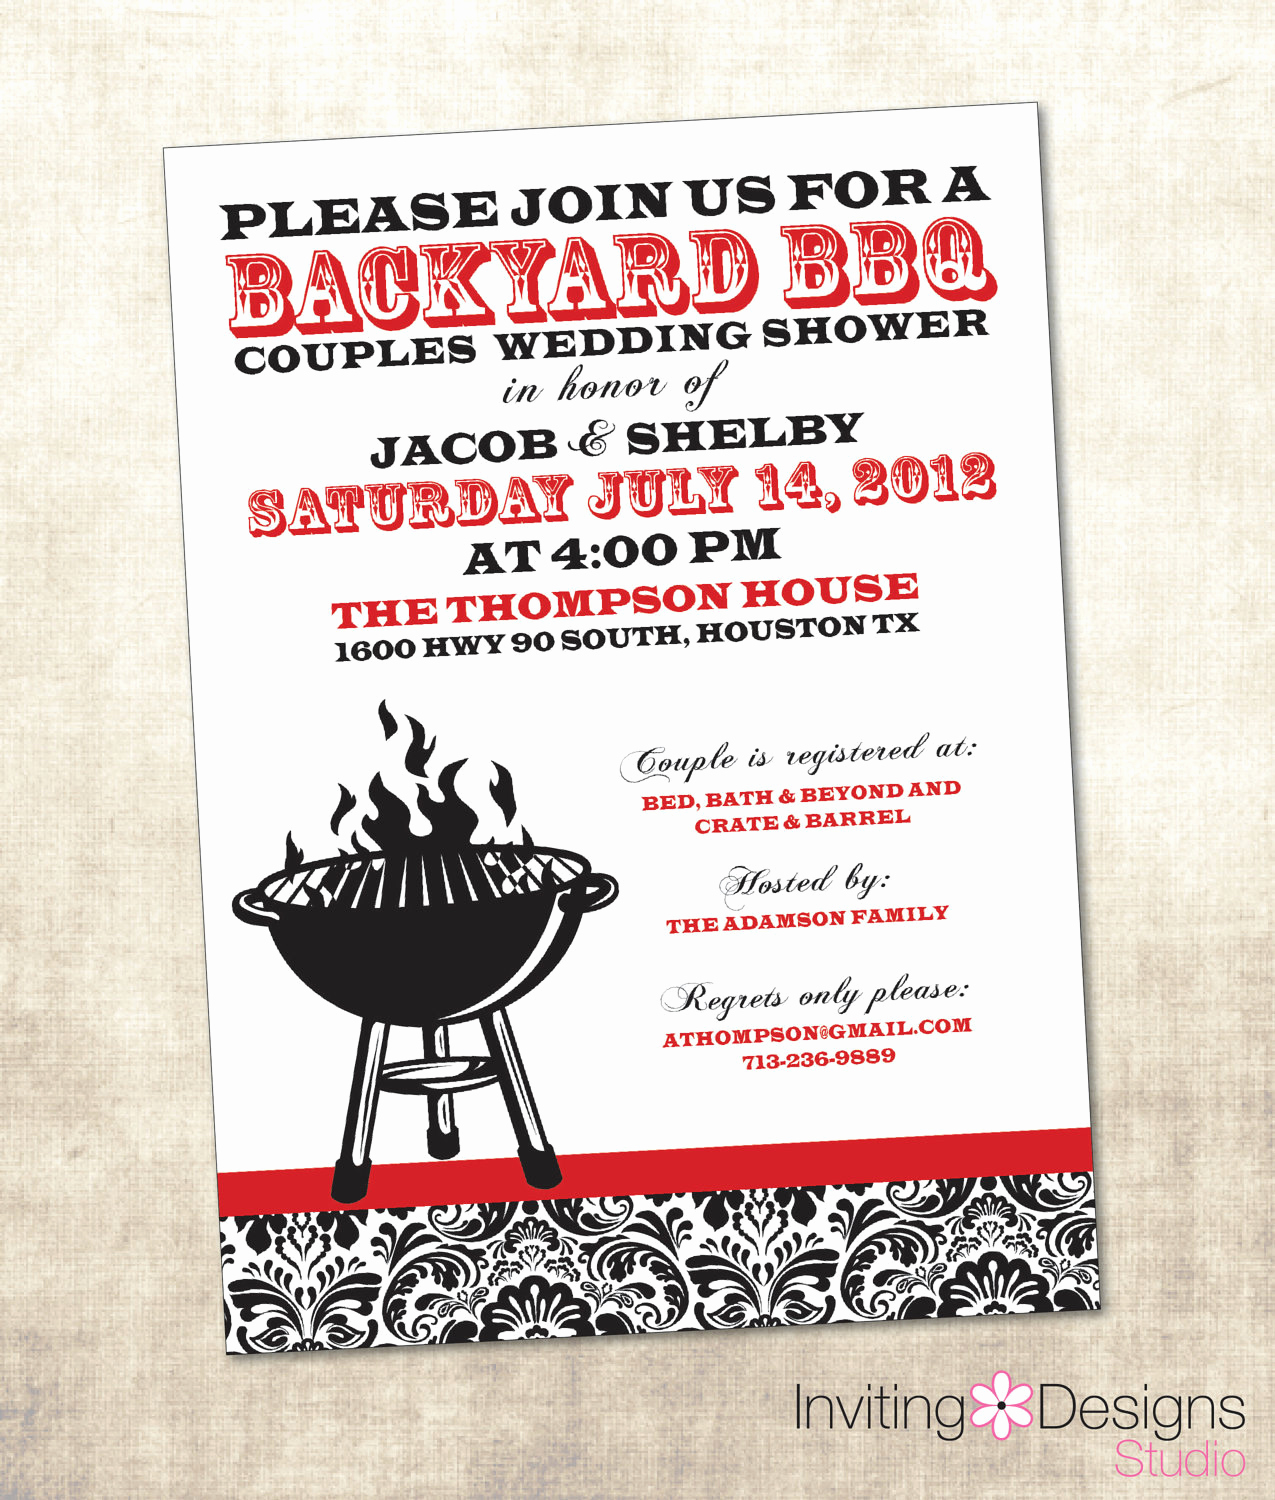 Couples Wedding Shower Invitation Wording Luxury Bbq Wedding Shower Invitation Couples by Invitingdesignstudio